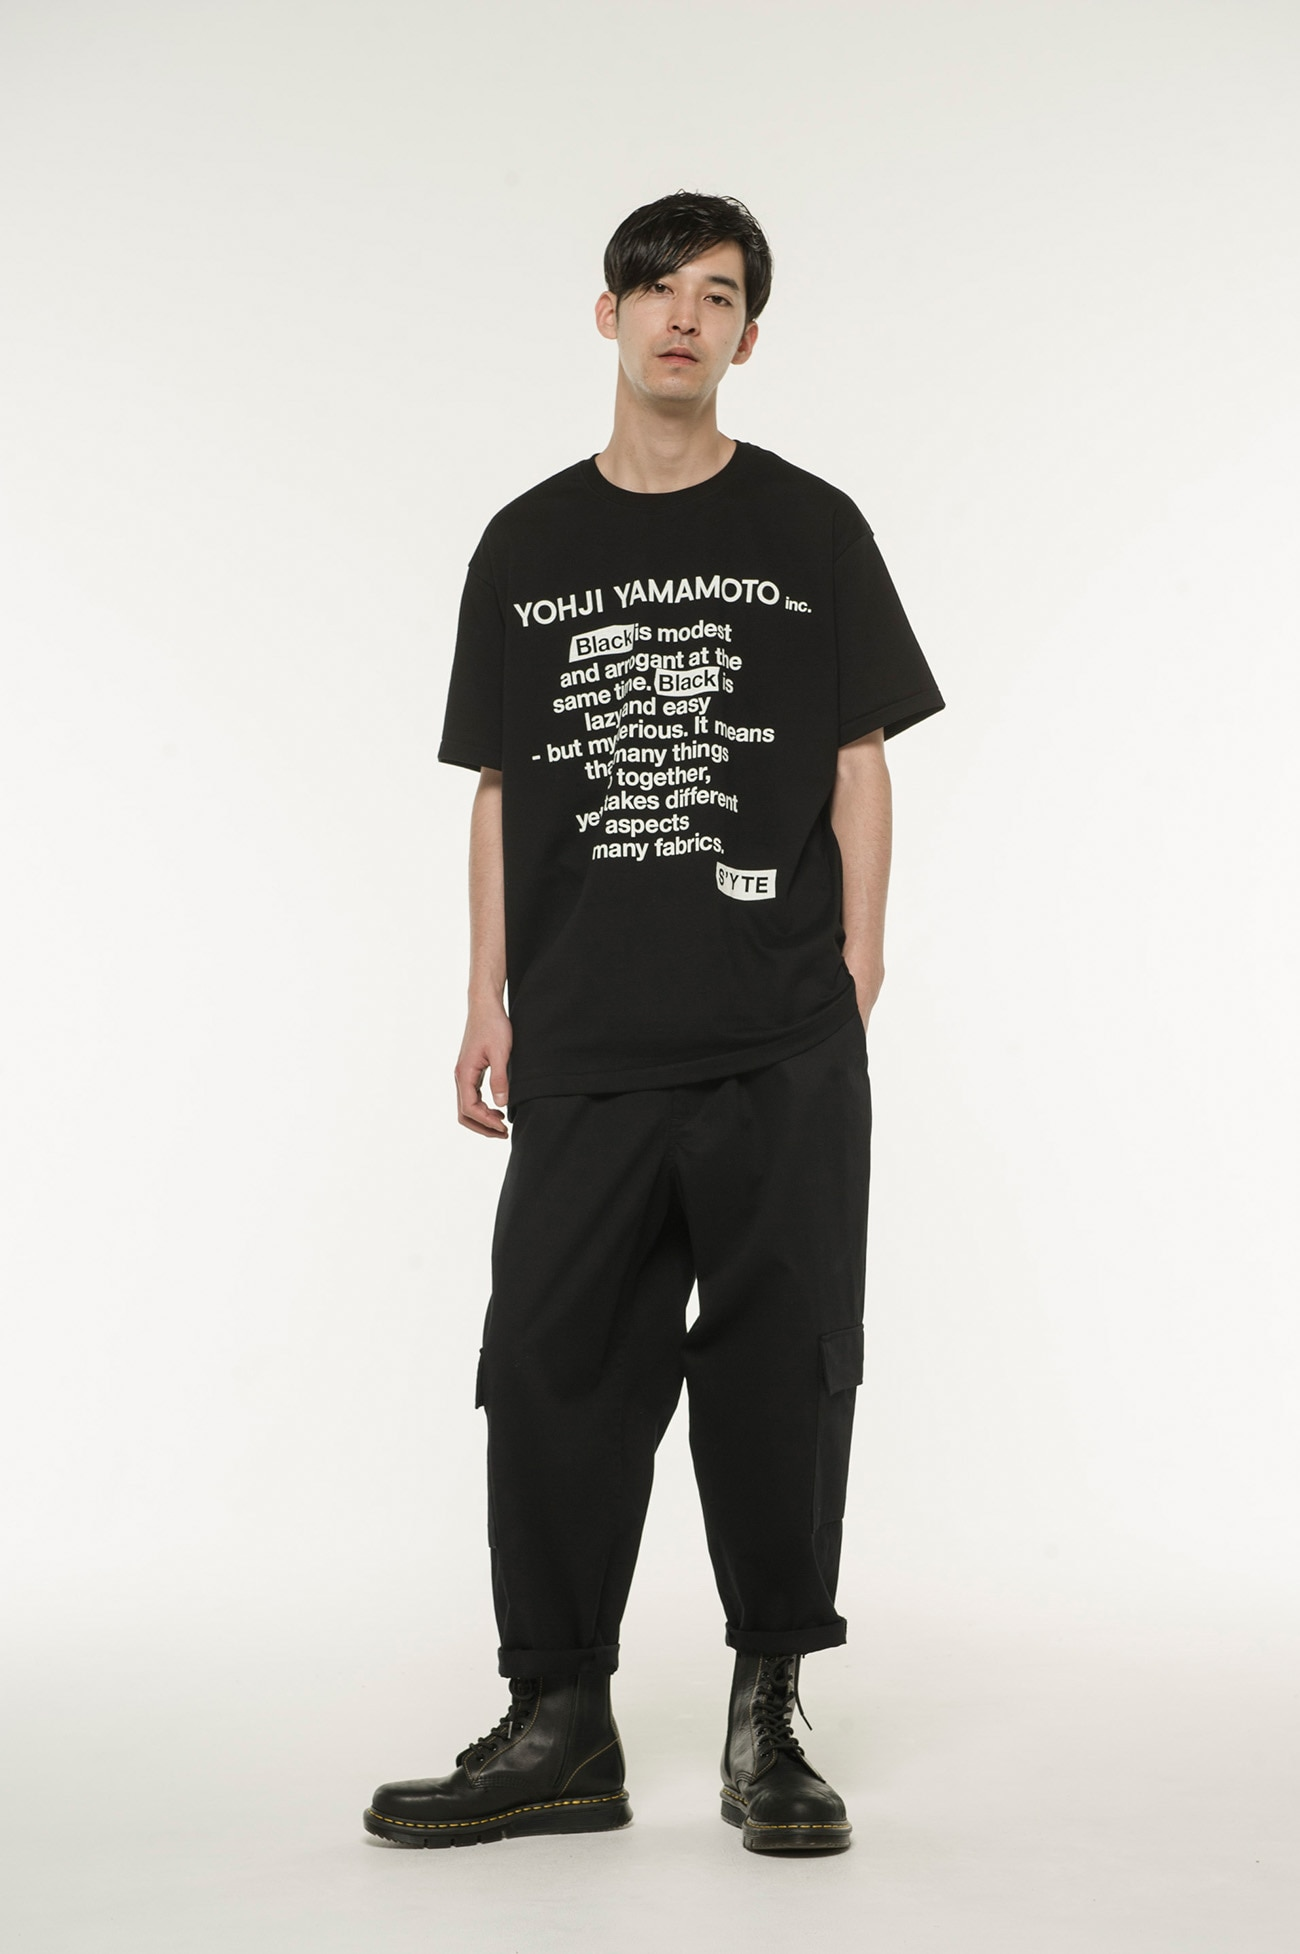 20 / CottonJersey `` Black Is Modest '' Message T-Shirt